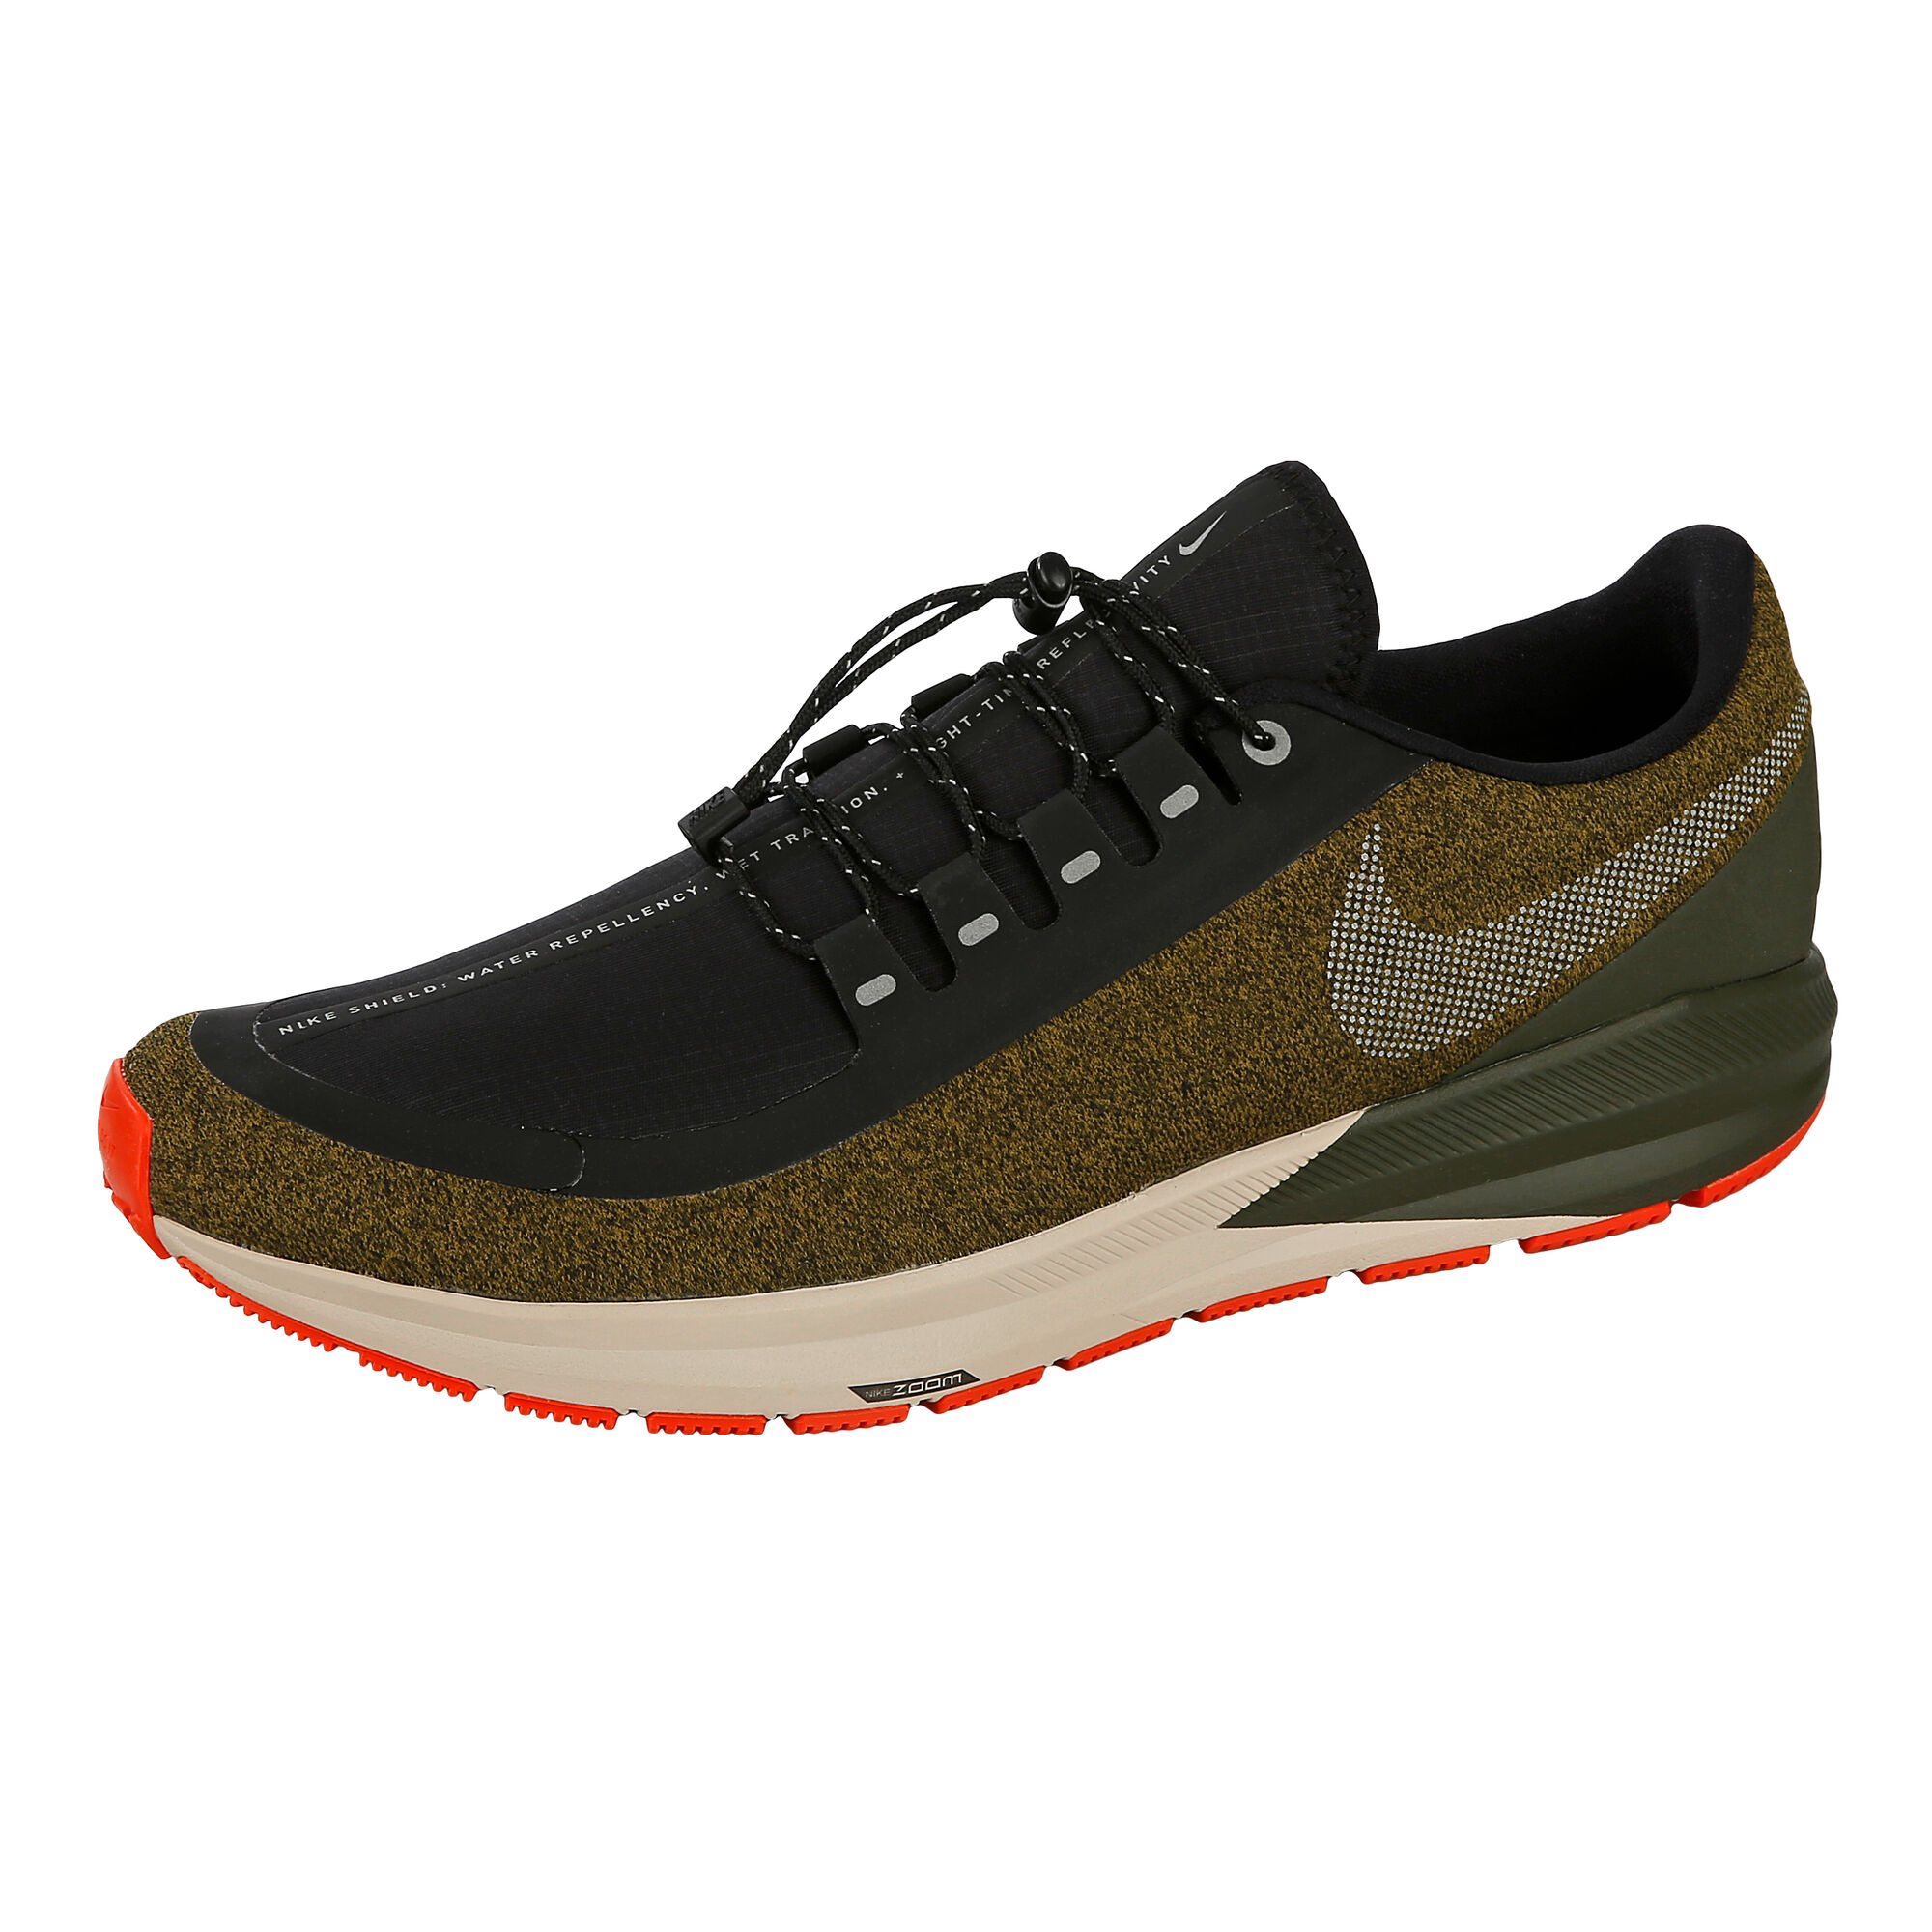 4ba099059be8 Nike · Nike · Nike · Nike · Nike · Nike · Nike · Nike · Nike · Nike. Air  Zoom Structure 22 Shield Men ...